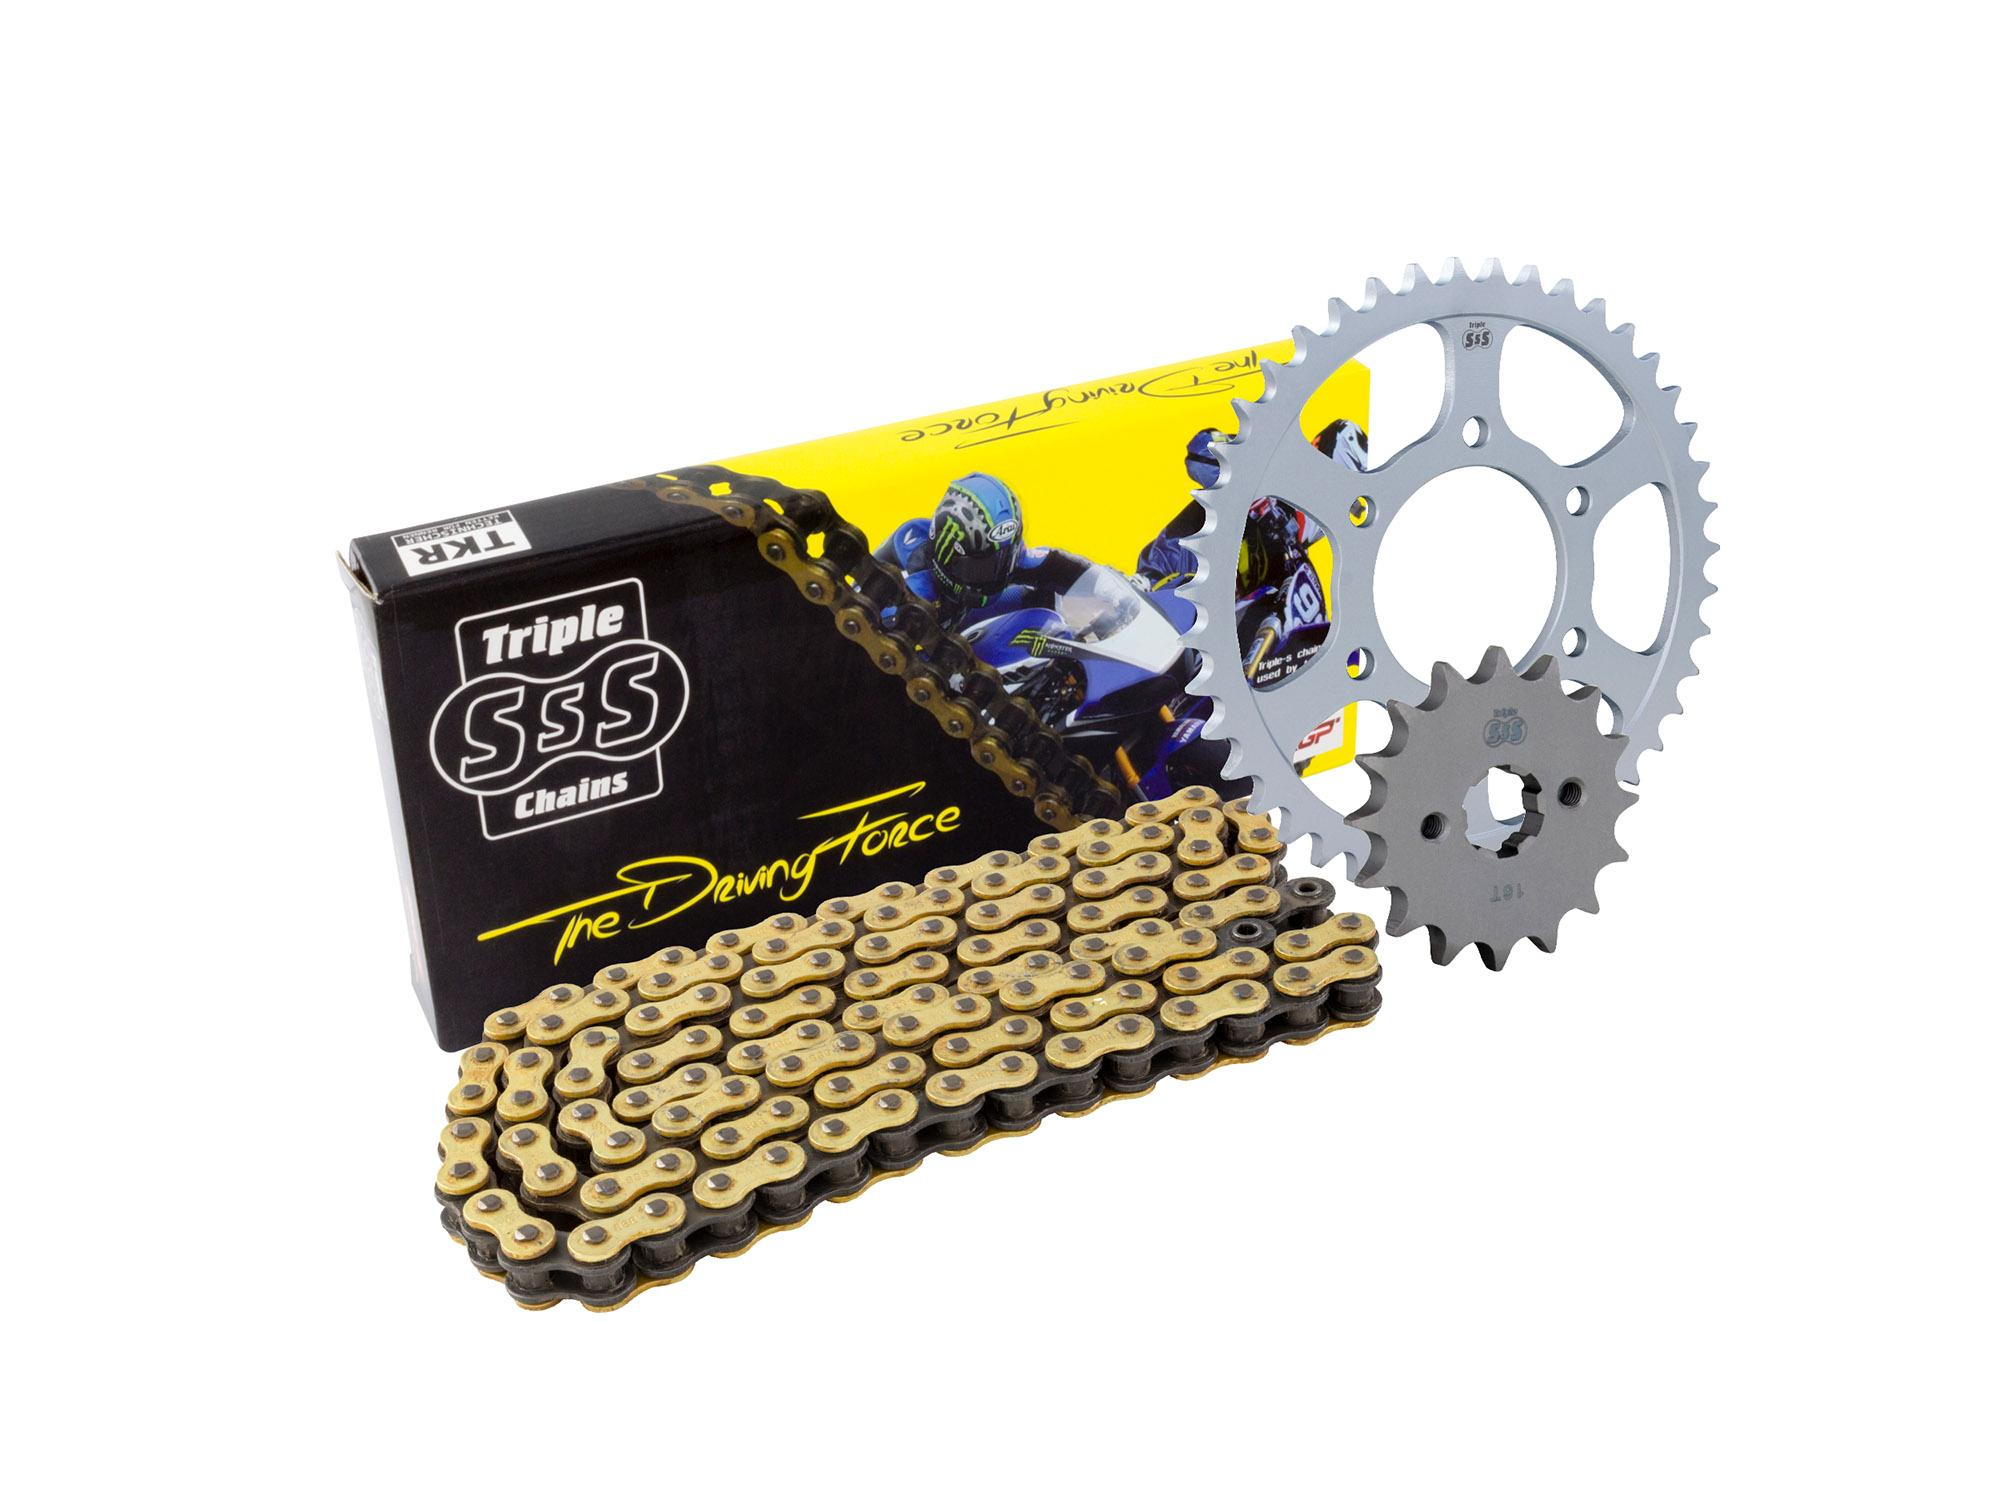 Yamaha FZ1 / Fazer ABS 06-10 Chain & Sprocket Kit: 17T Front, 45T Rear, HD O-Ring Gold Chain 530H 122 Link